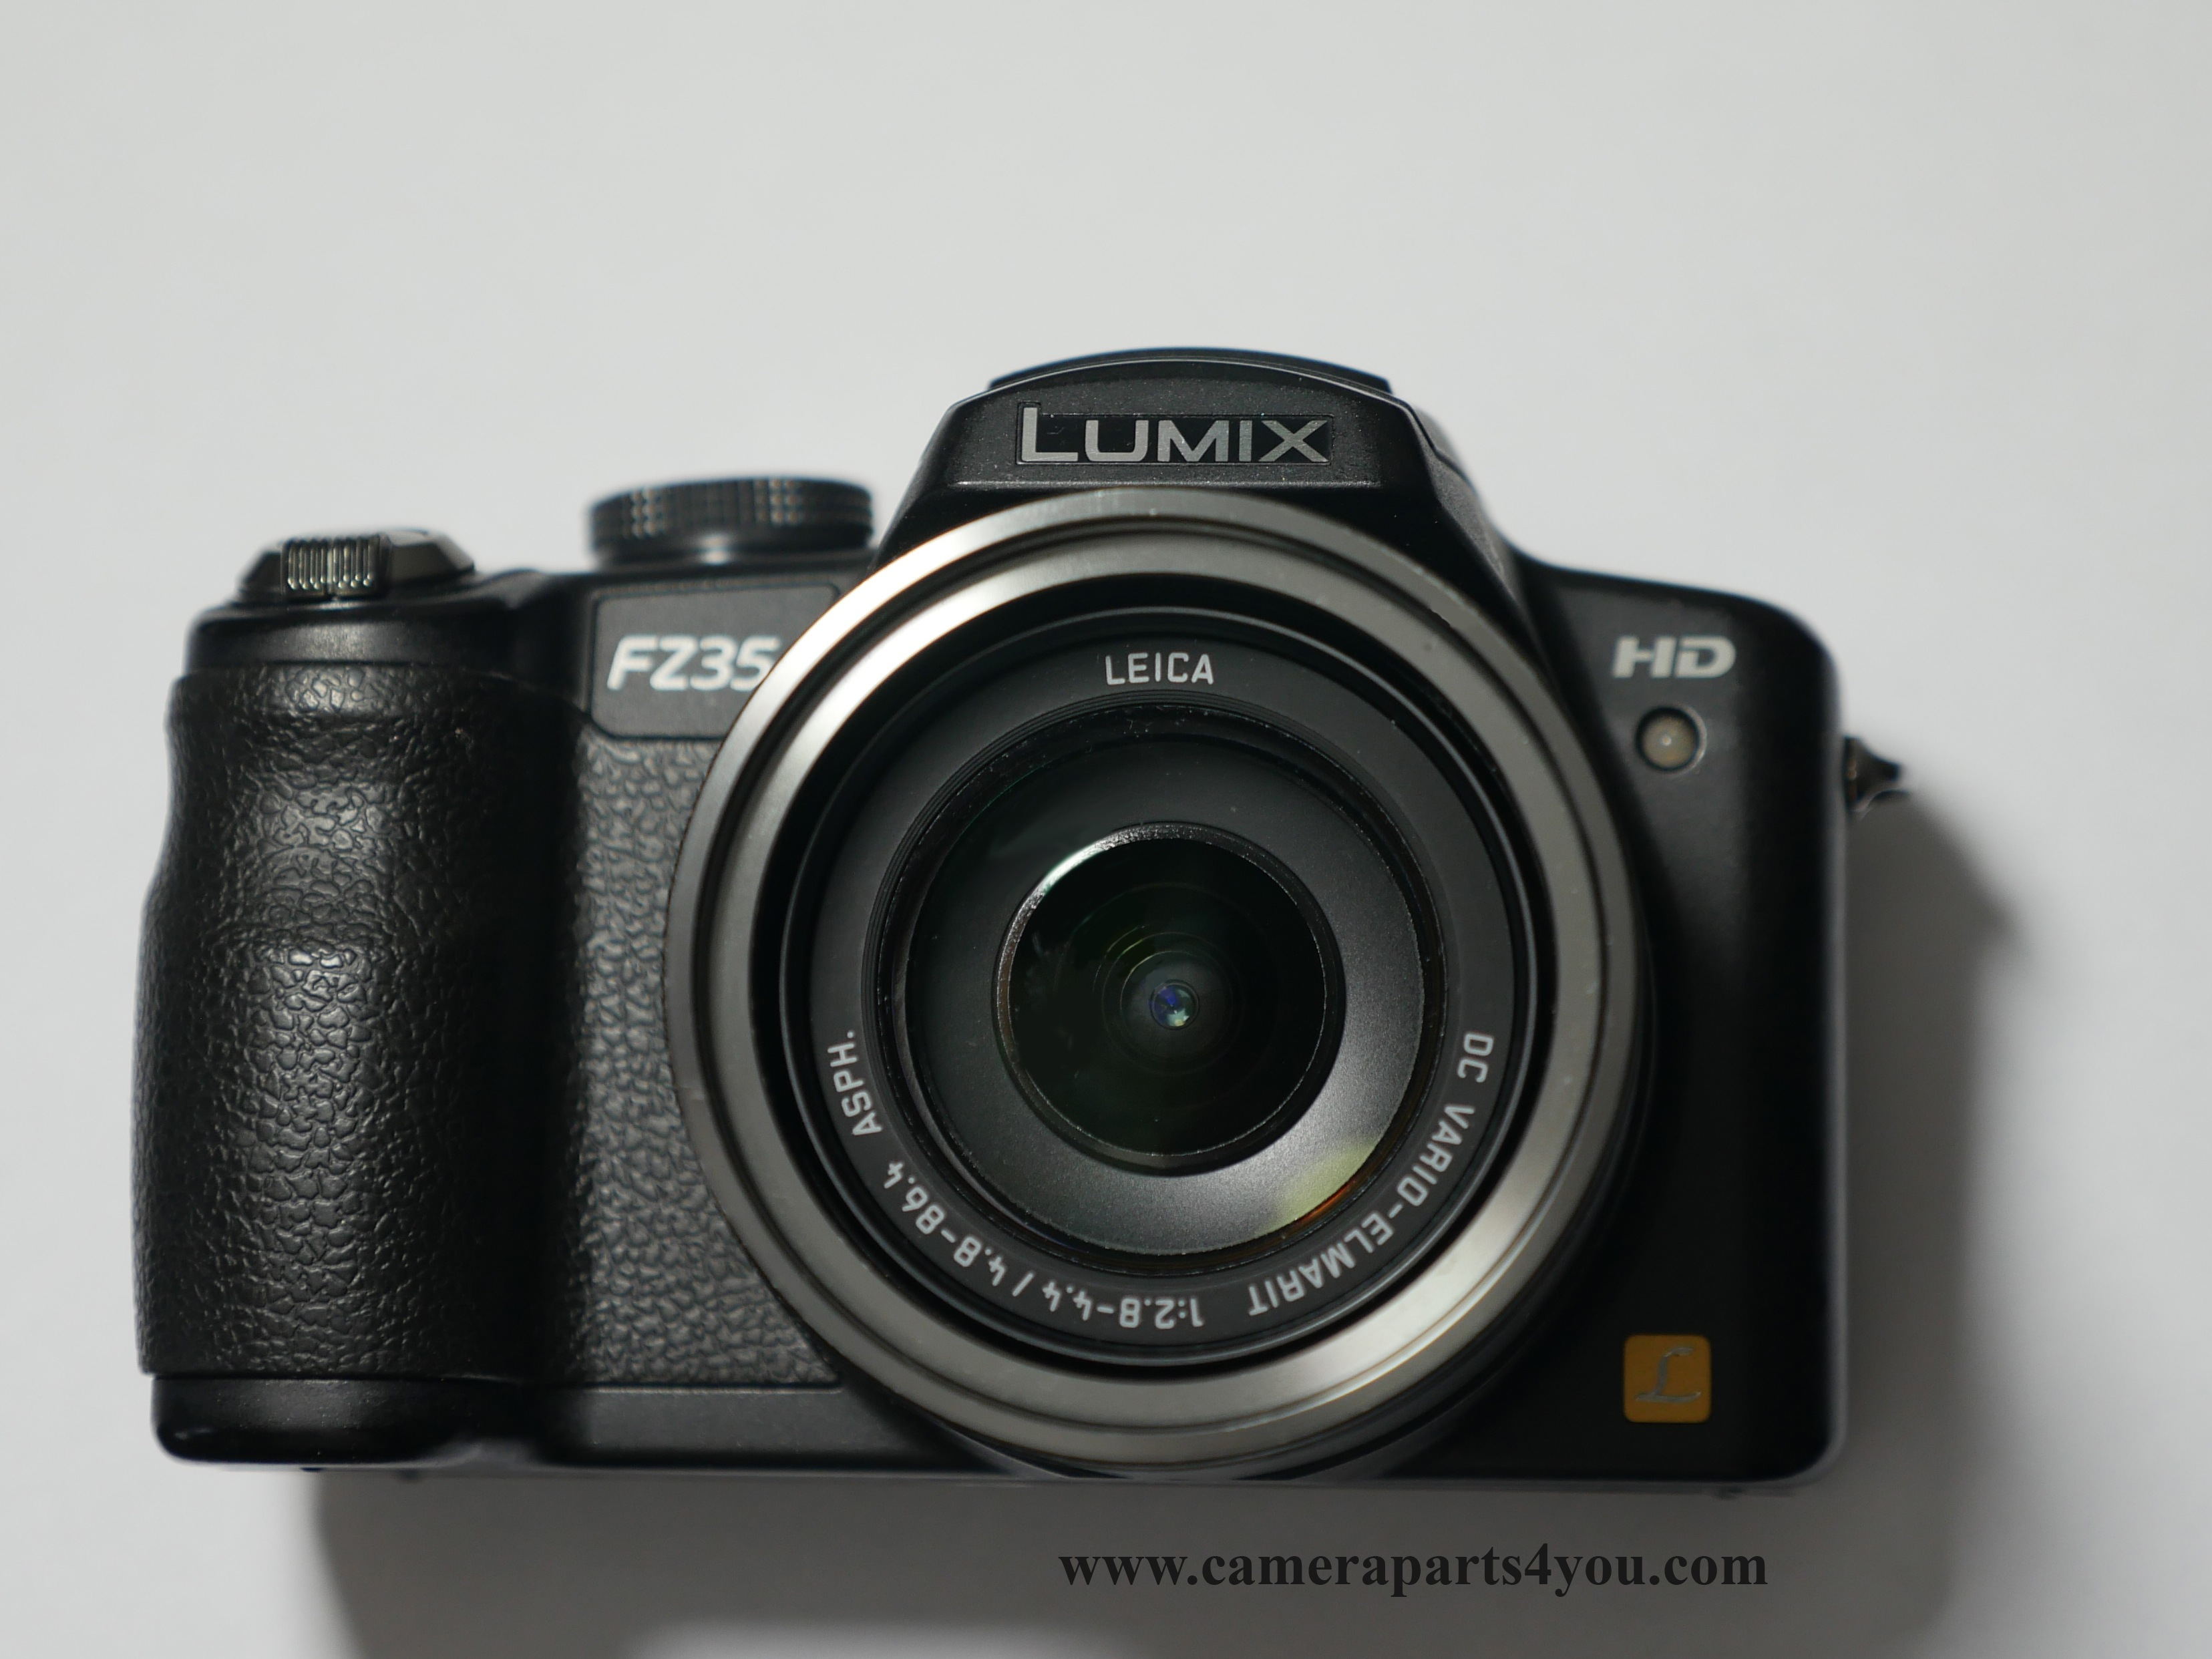 panasonic lumix dmc fz35 lcd replacement ifixit repair guide rh ifixit com Panasonic.comsupportbycncompass Panasonic.comsupportbycncompass